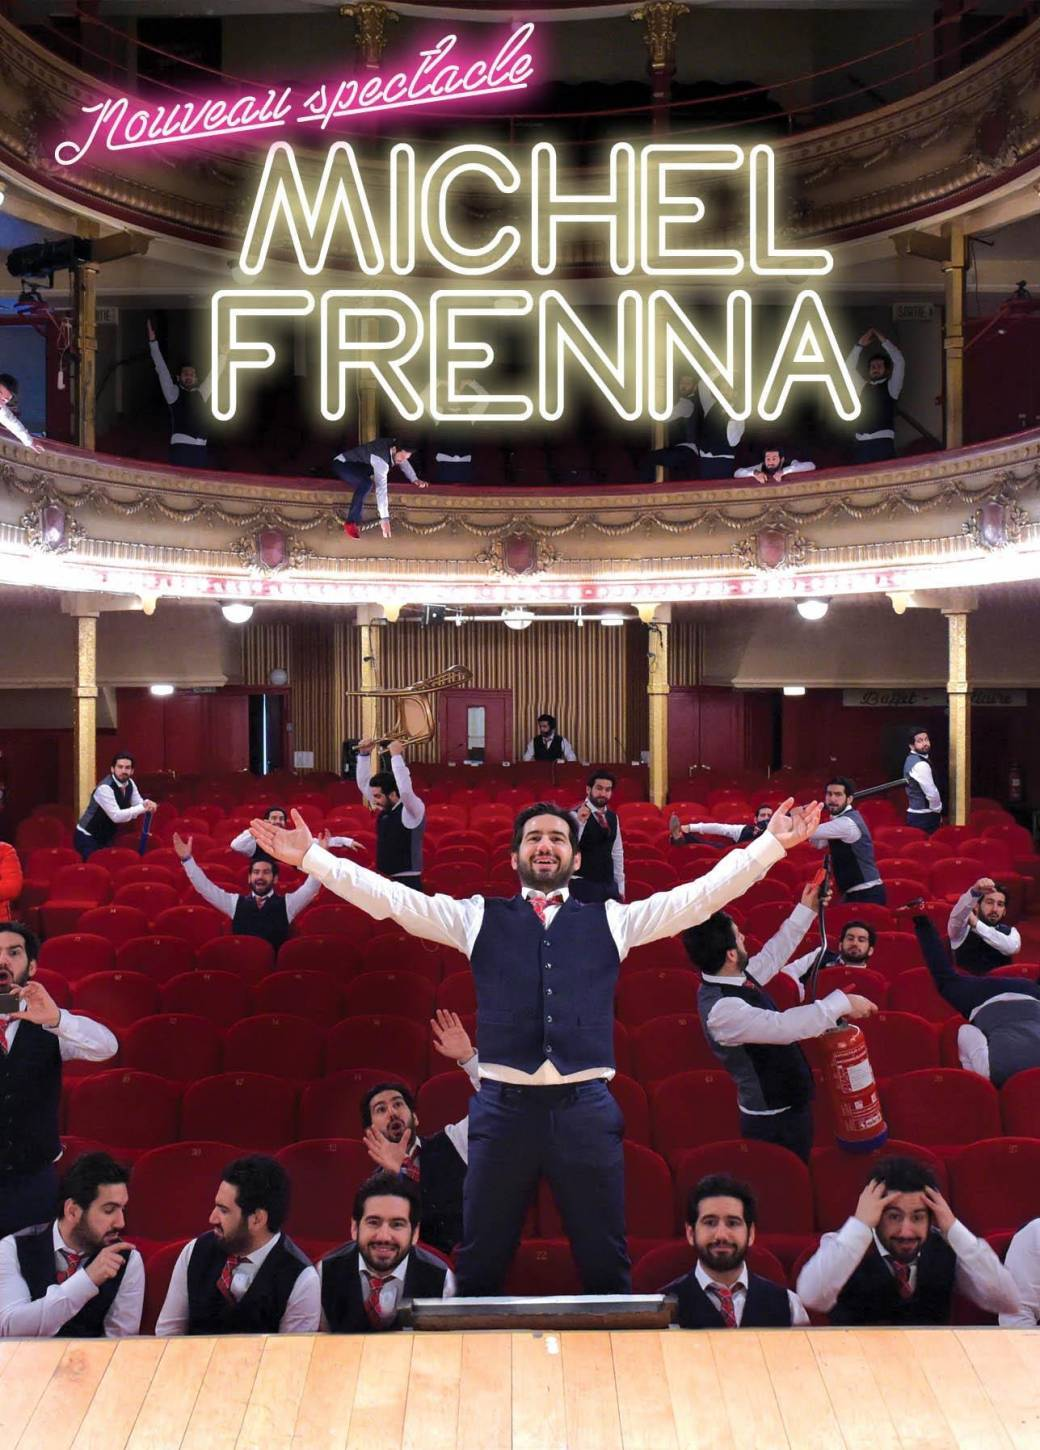 Nouveau Spectacle de Michel Frenna